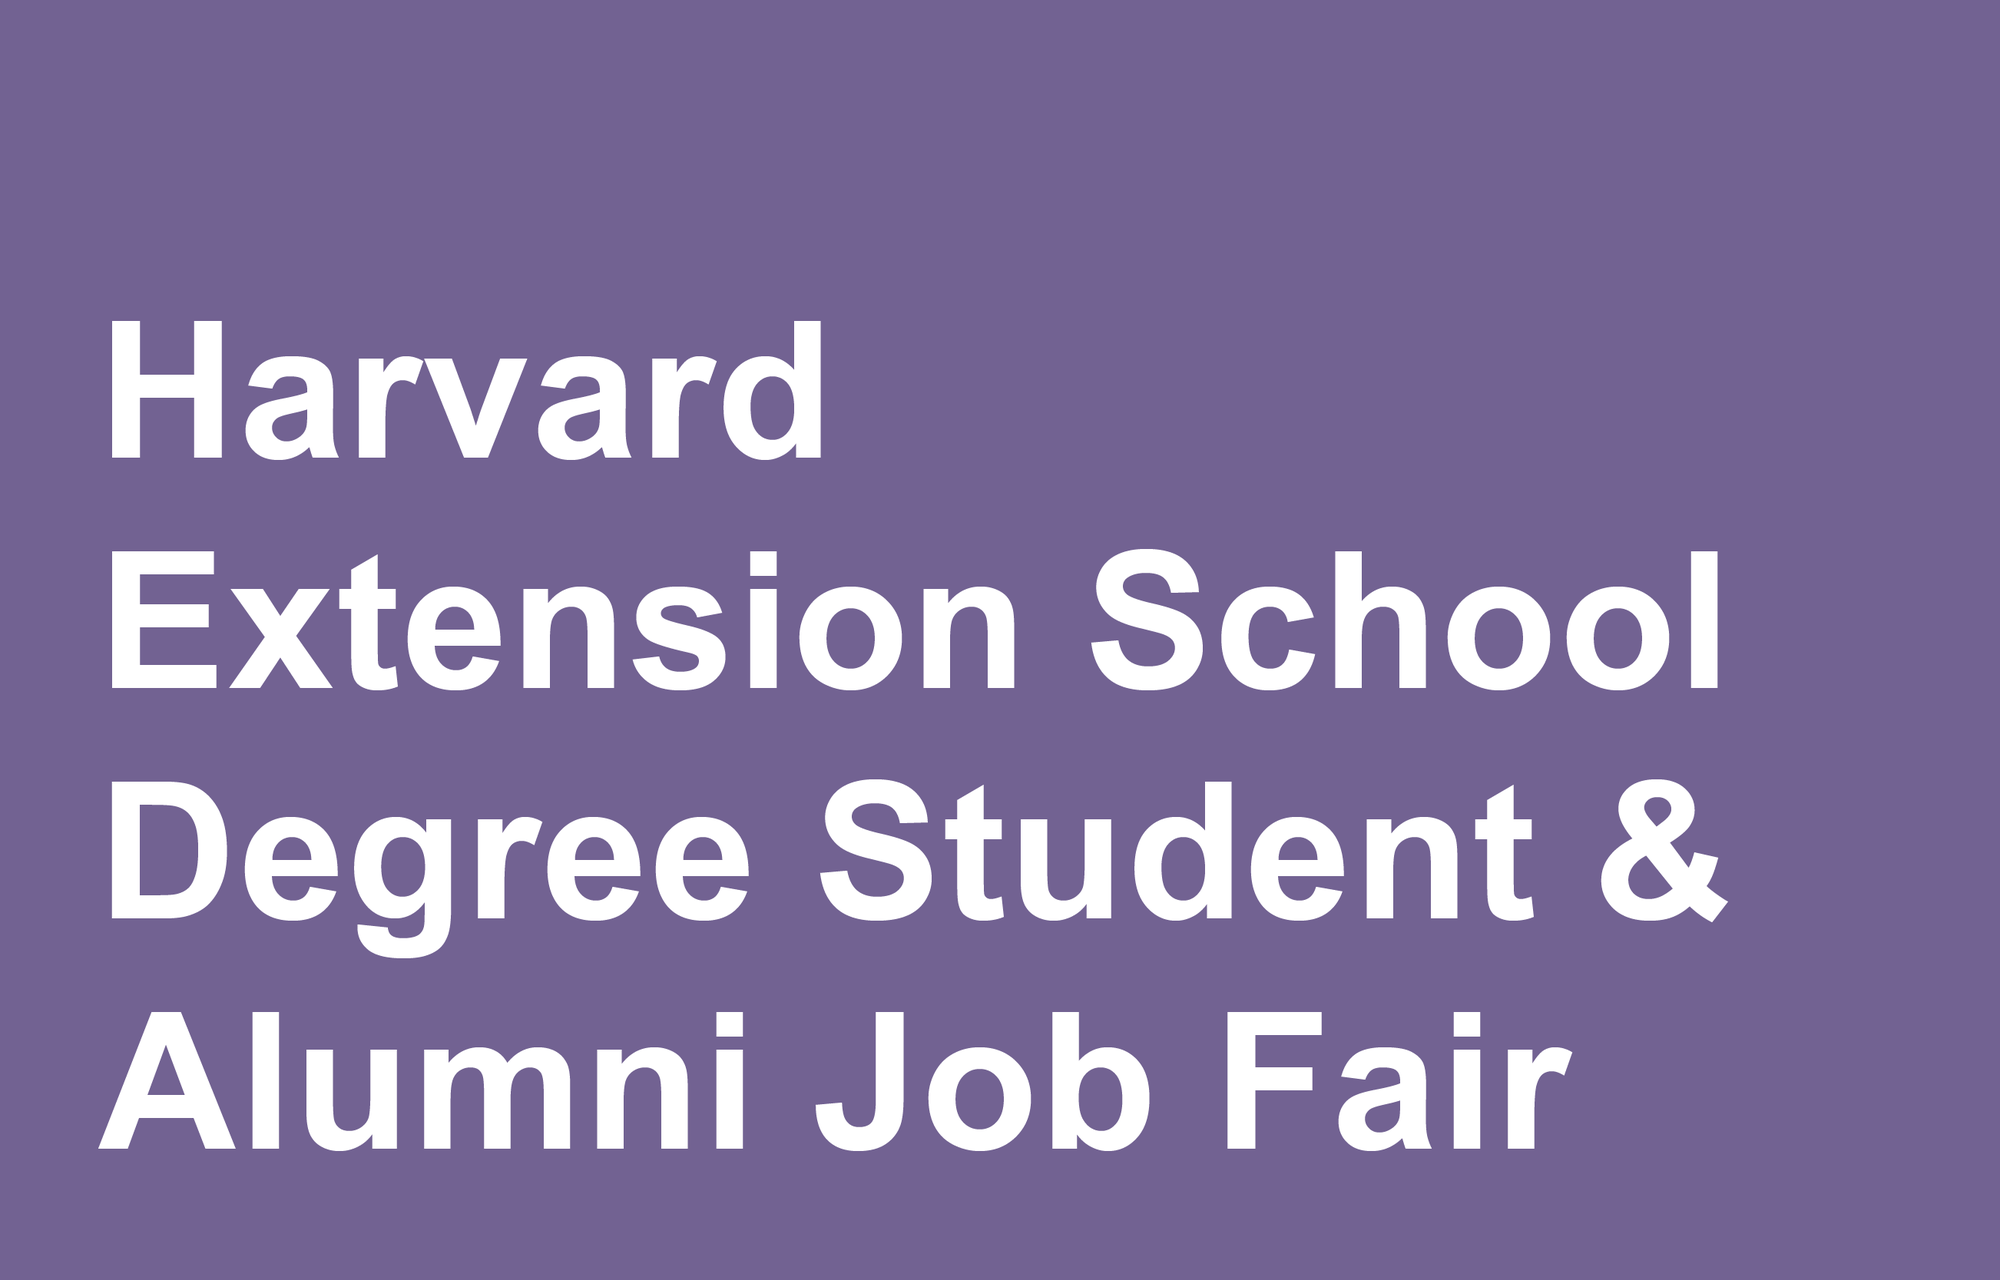 Extension School Fair